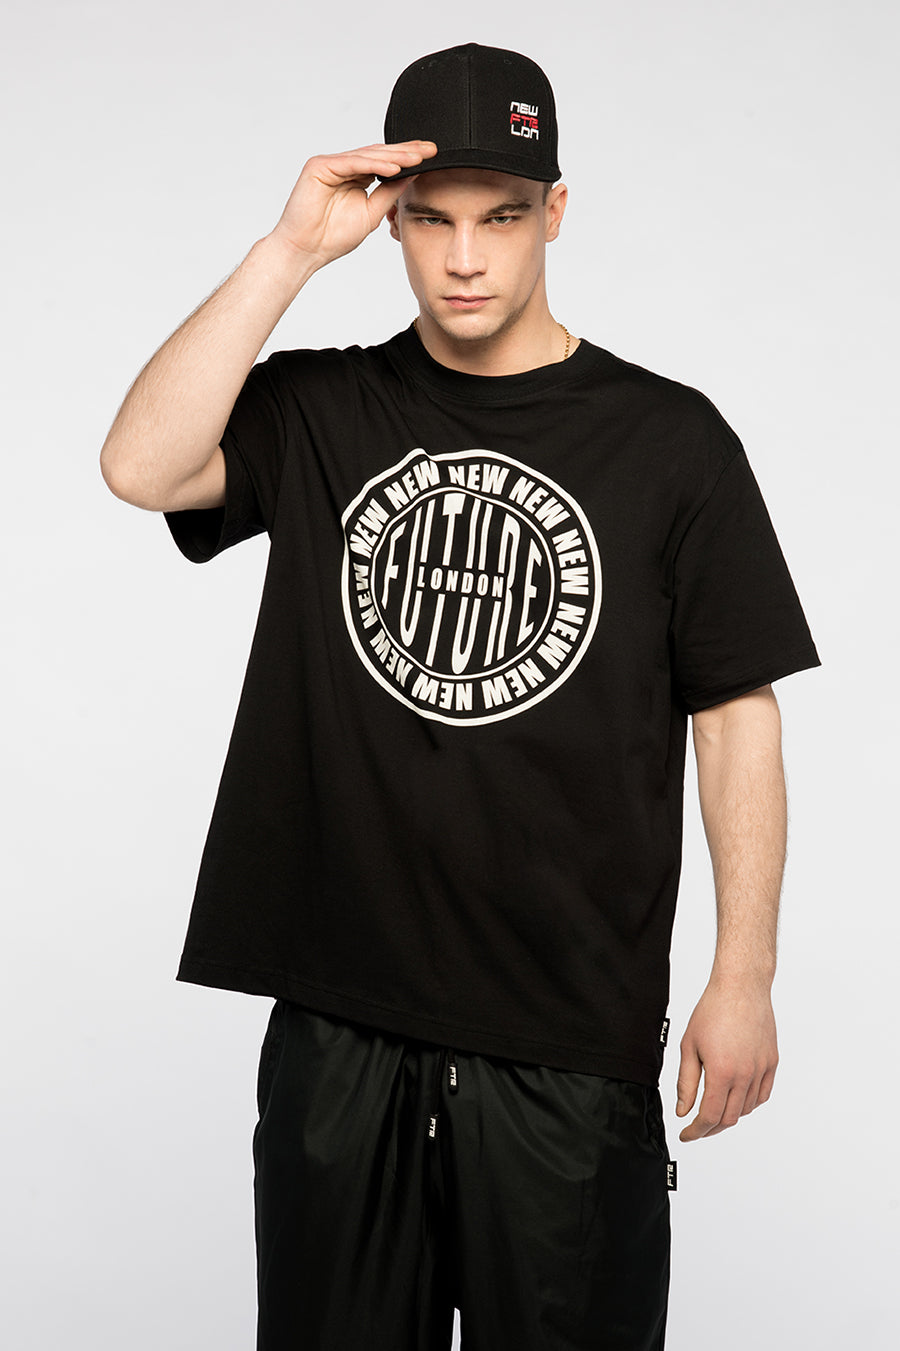 new_future_london_stamp_t_shirt_blk_2-1.jpg